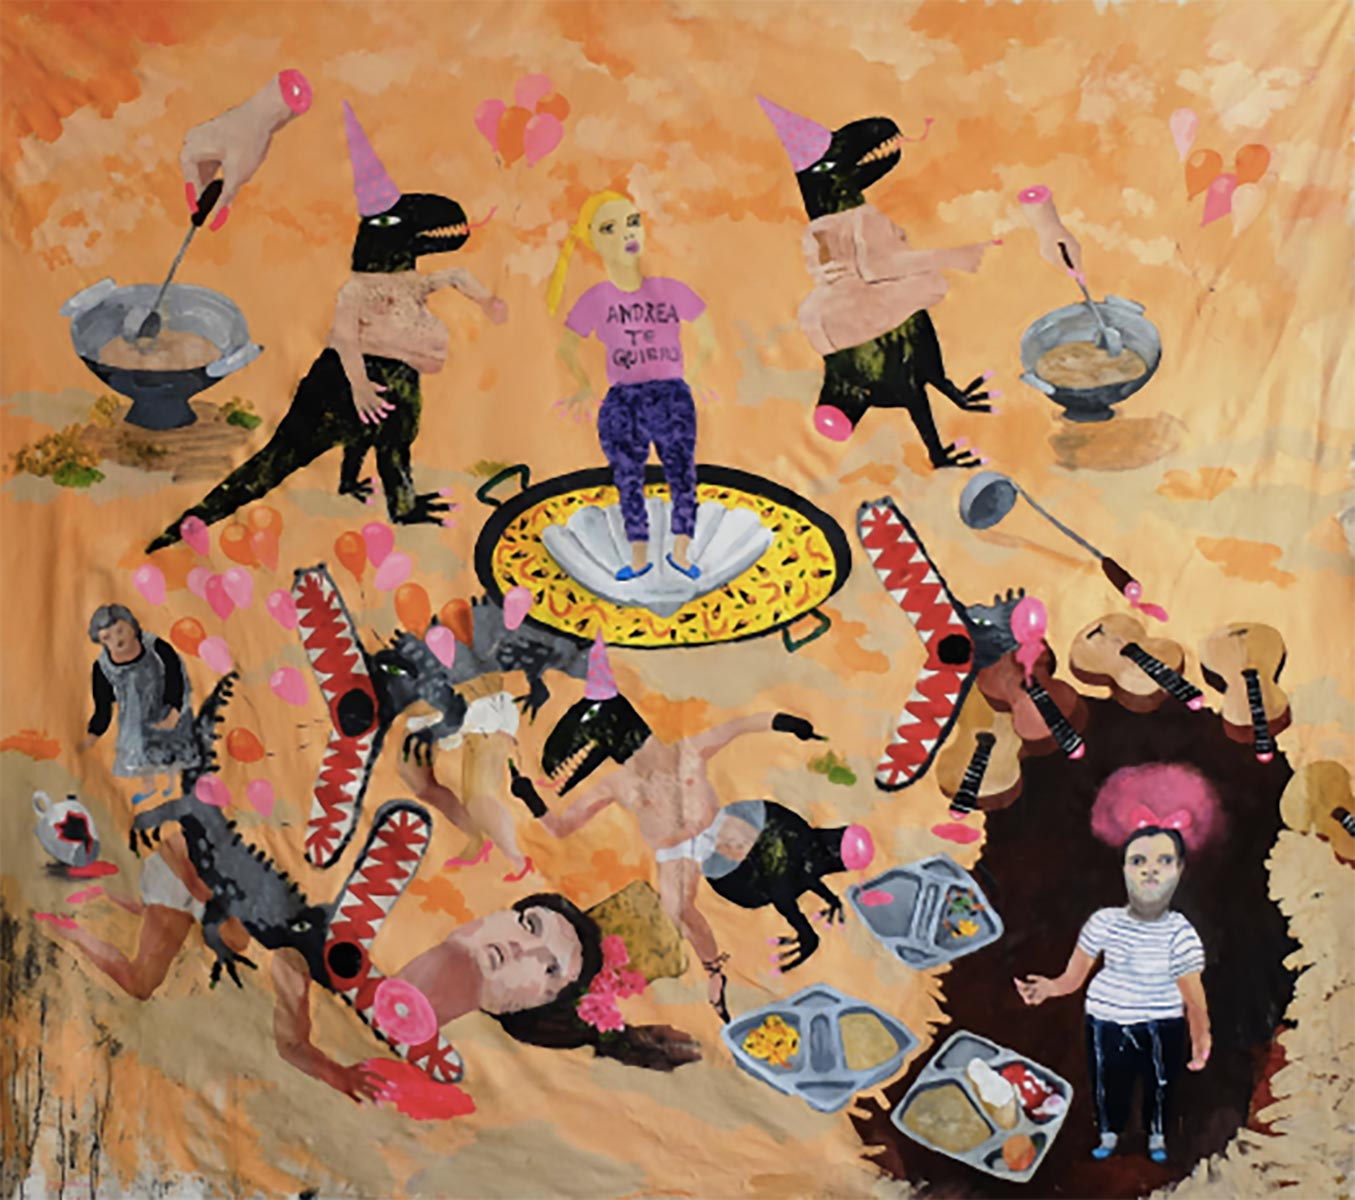 Delicious tonadillera and la princesa del pueblo, 150x180 cm, acrylic on plywood, 2015